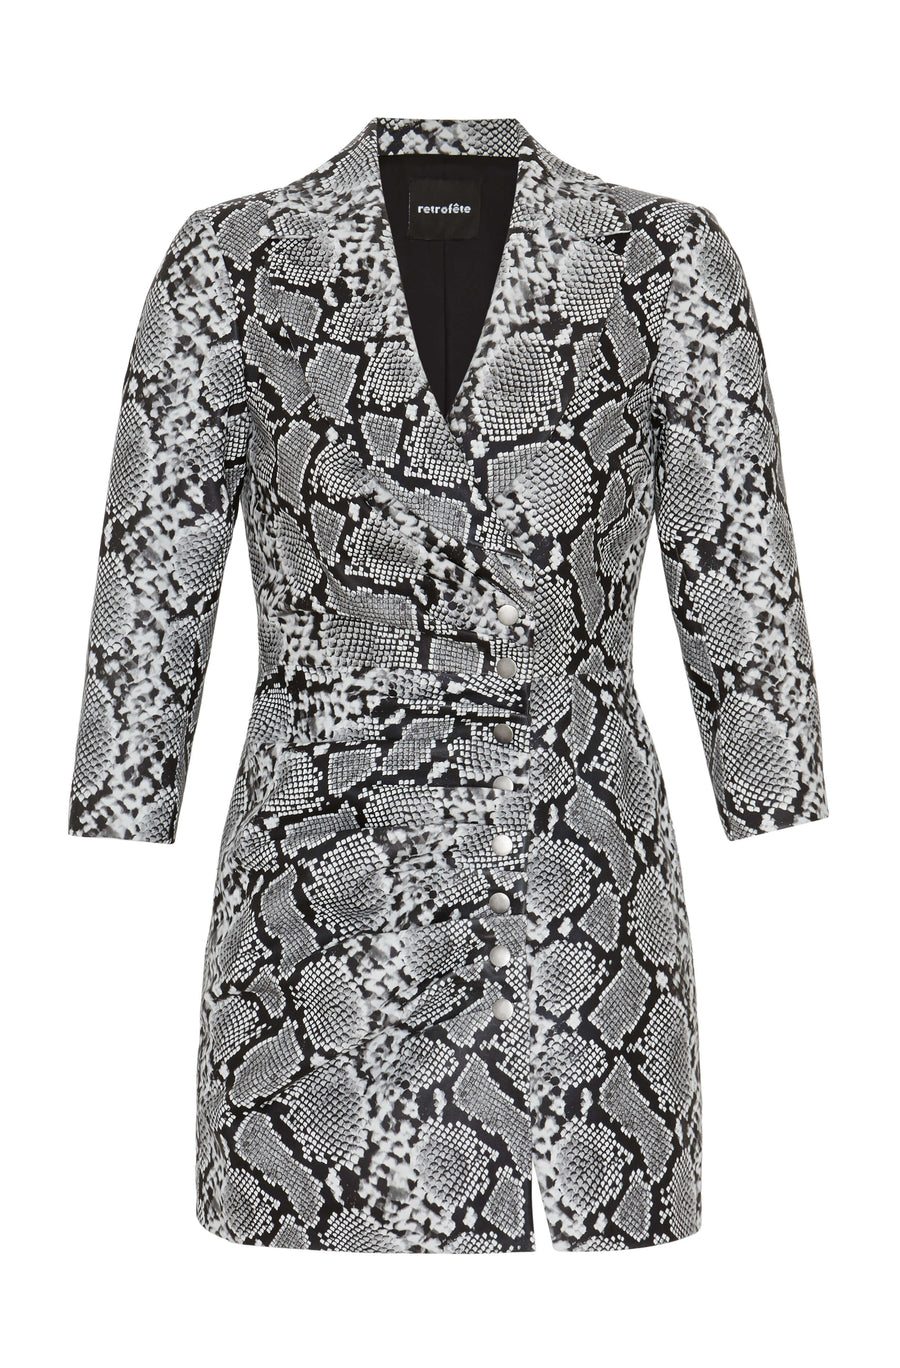 Retrofête Willa Dress in Silver Snakeskin from The New Trend